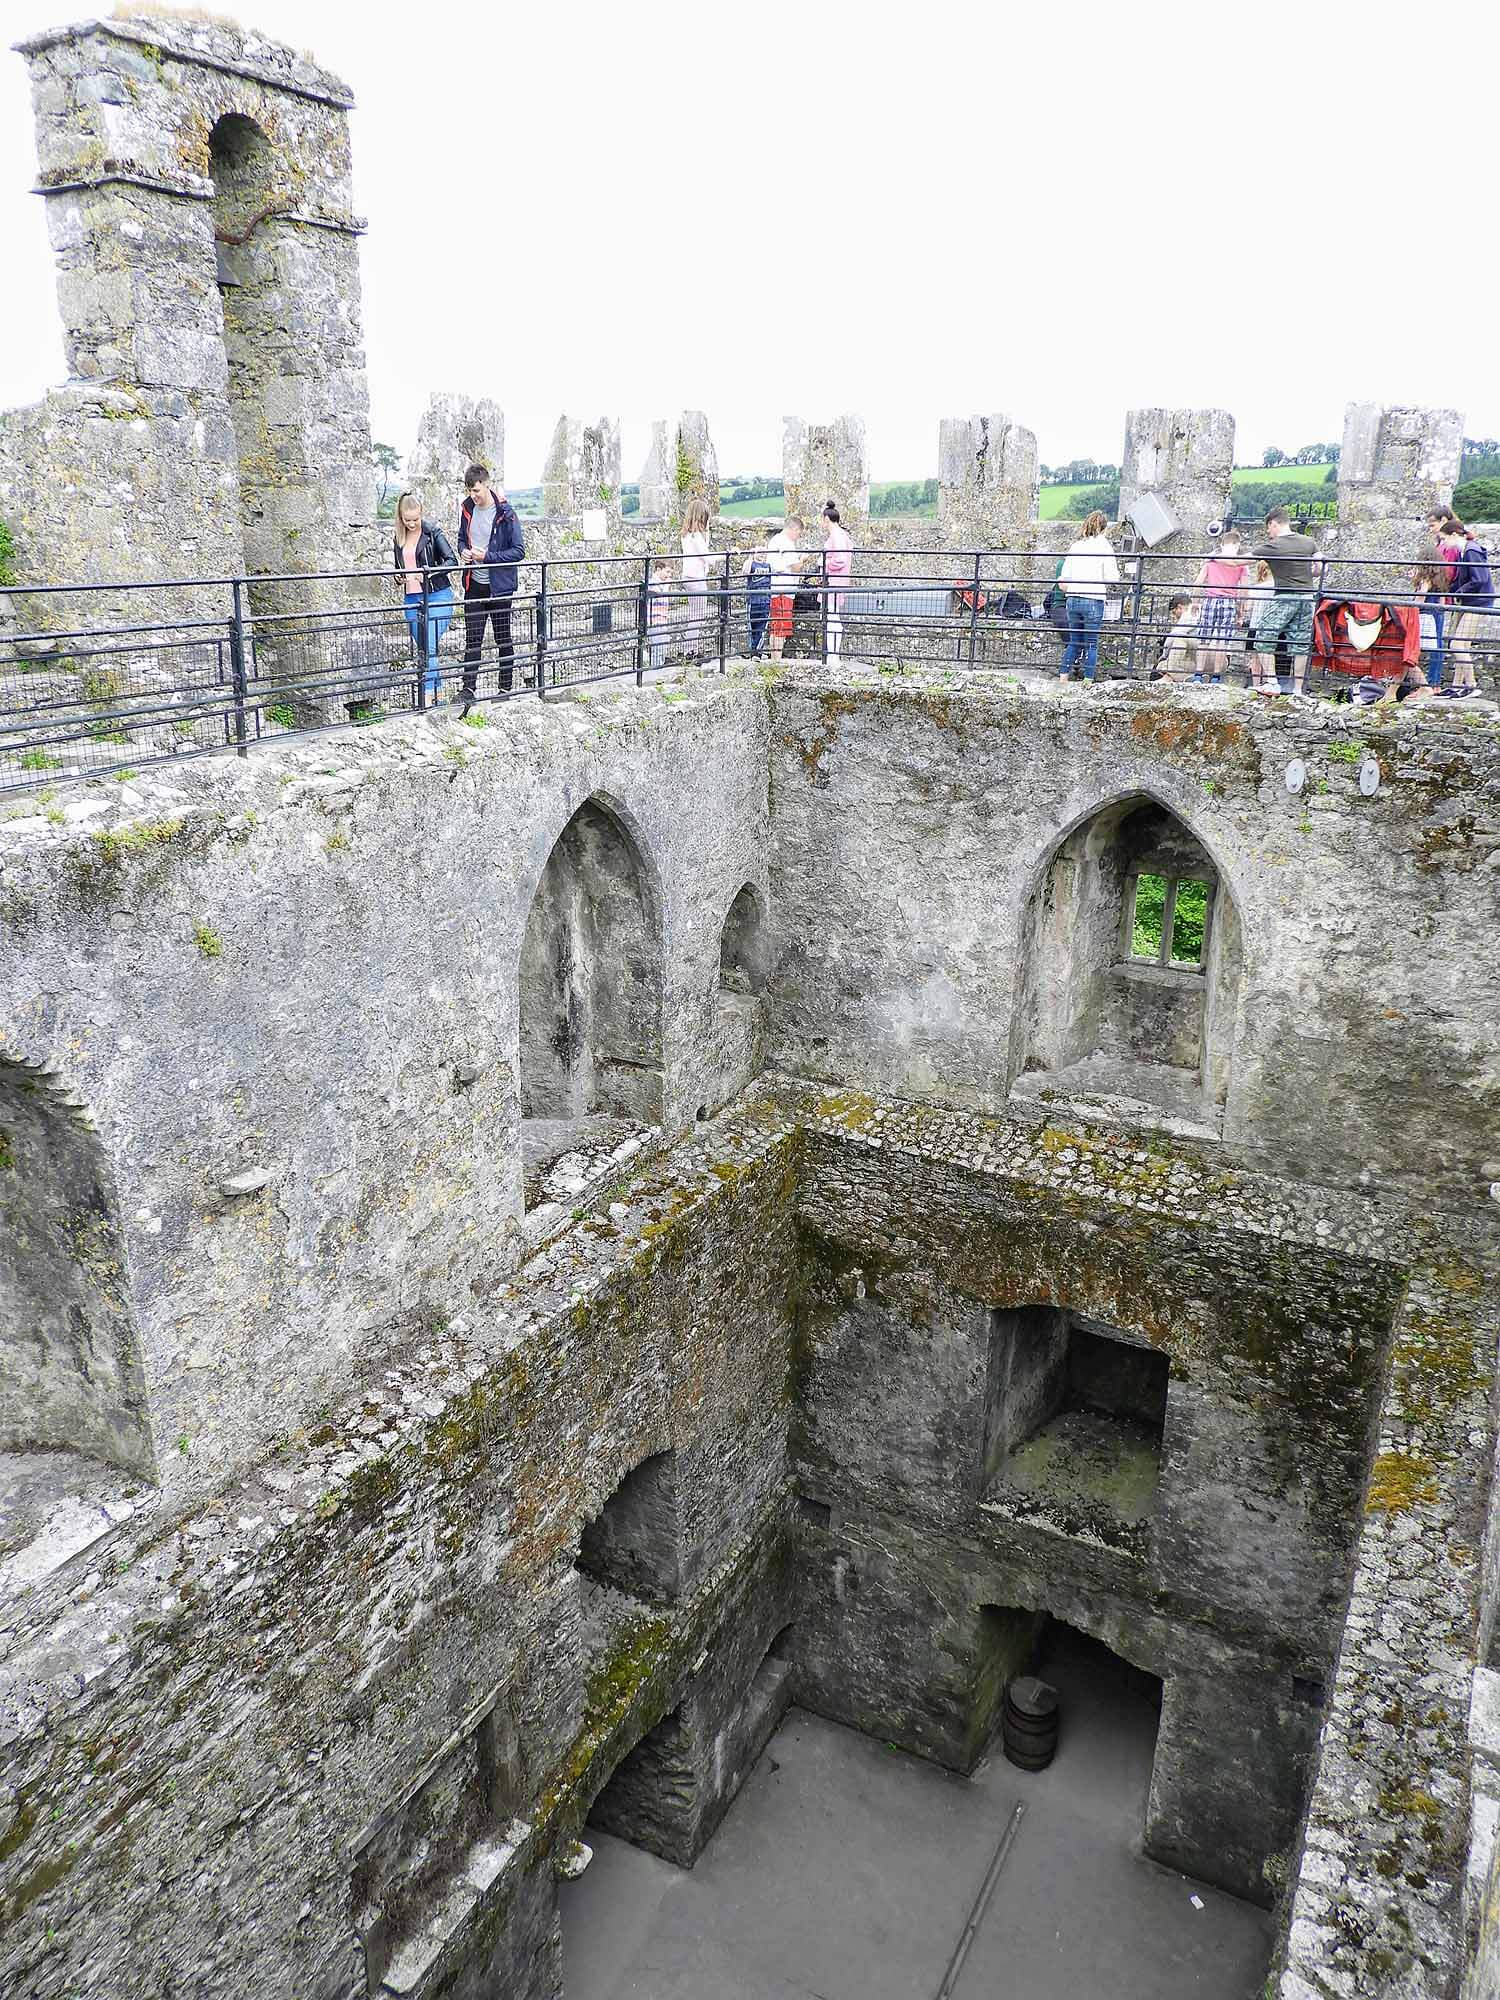 ireland-blarney-castle-stone-kiss-line-top.jpg